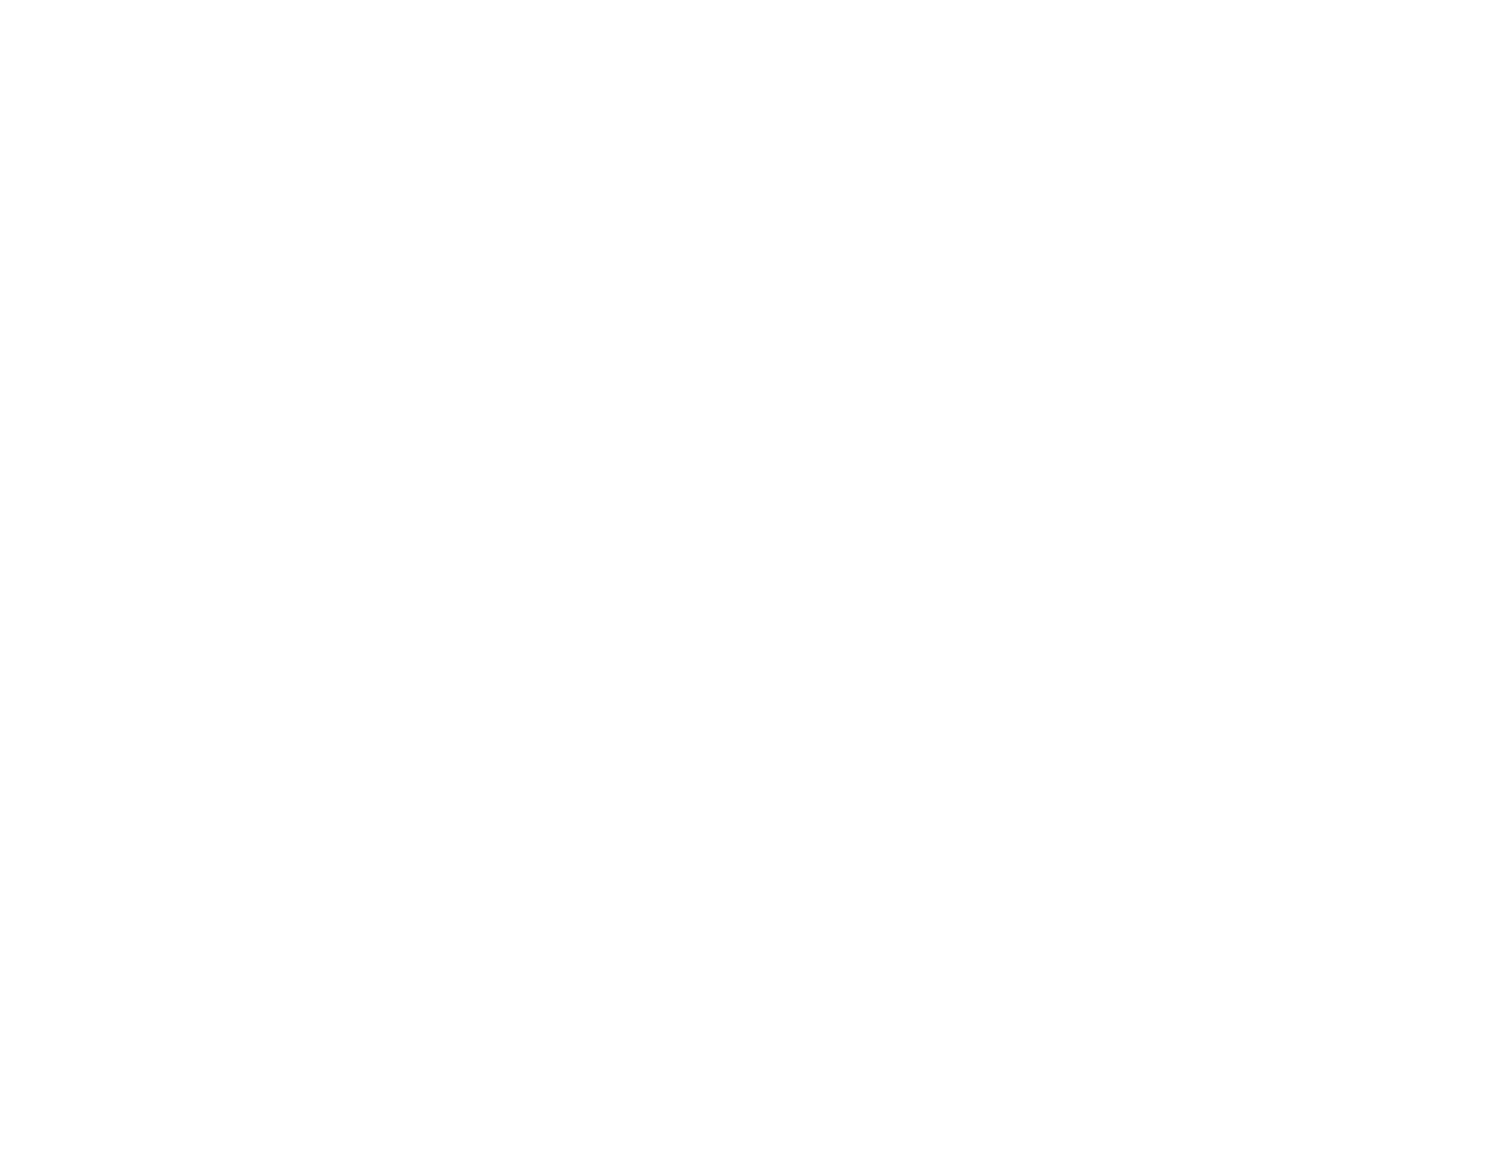 The Pressed Fest - A Cider Festival